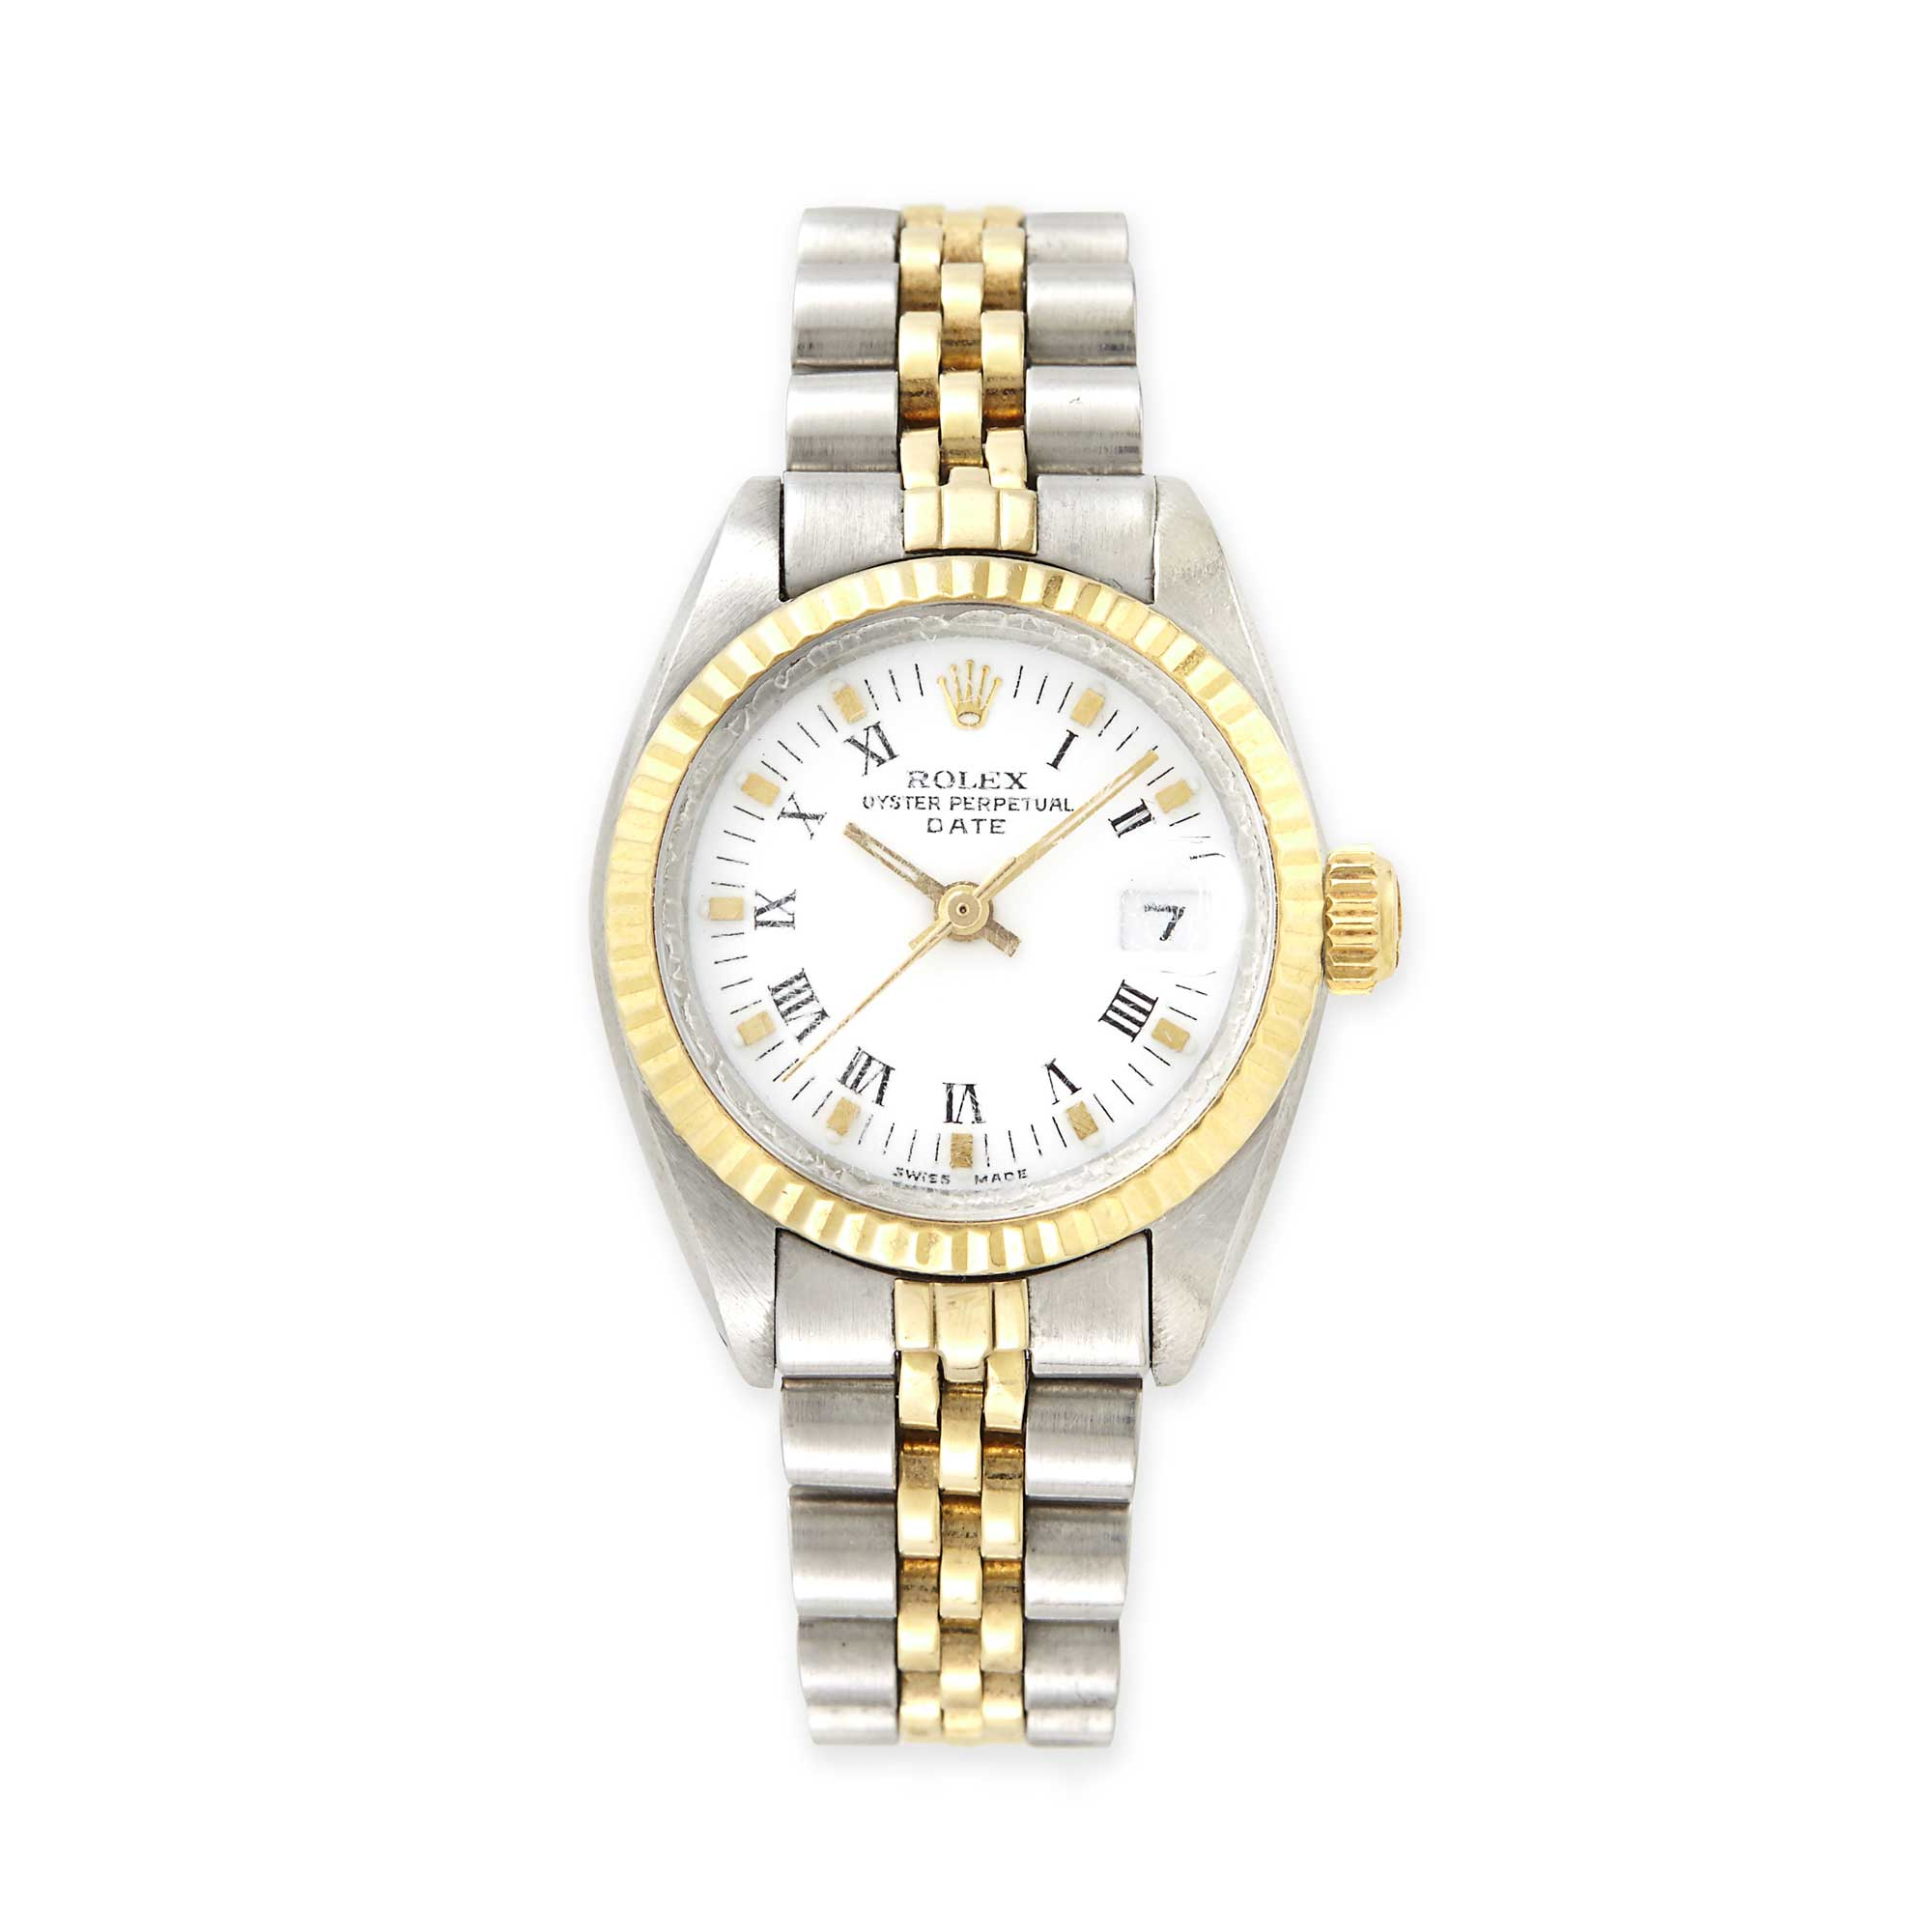 Lot image - Ladys Gold and Stainless Steel Oyster Perpetual Date Wristwatch, Rolex